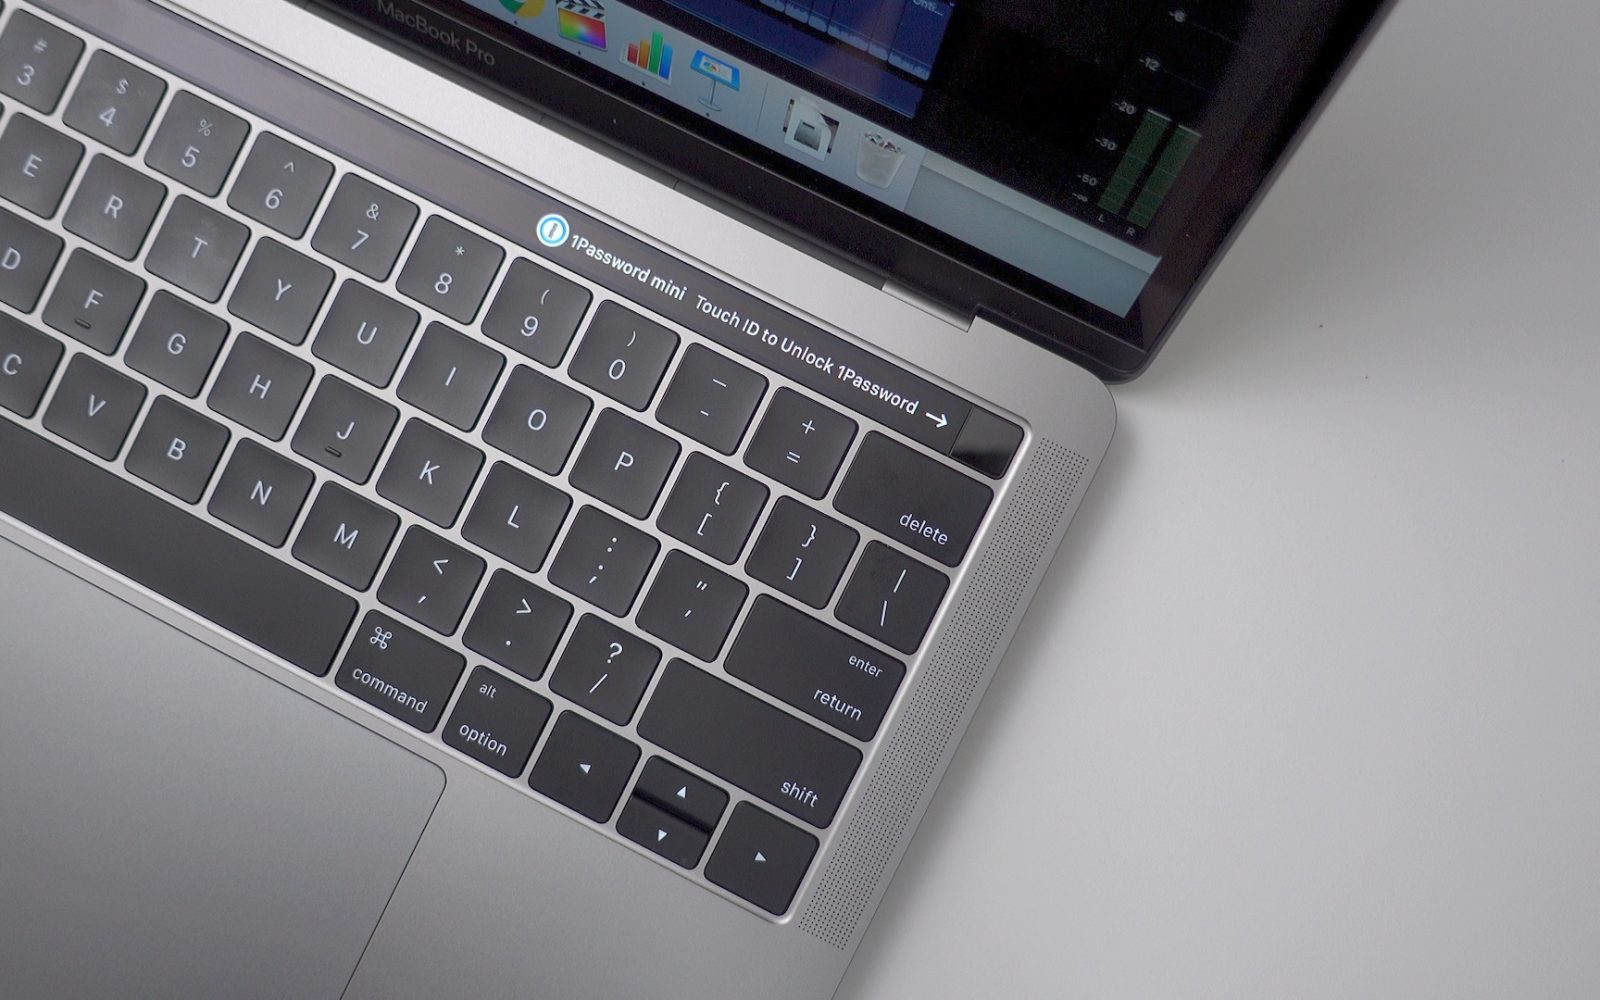 Hands-on impressions: 13-inch MacBook Pro with Touch Bar